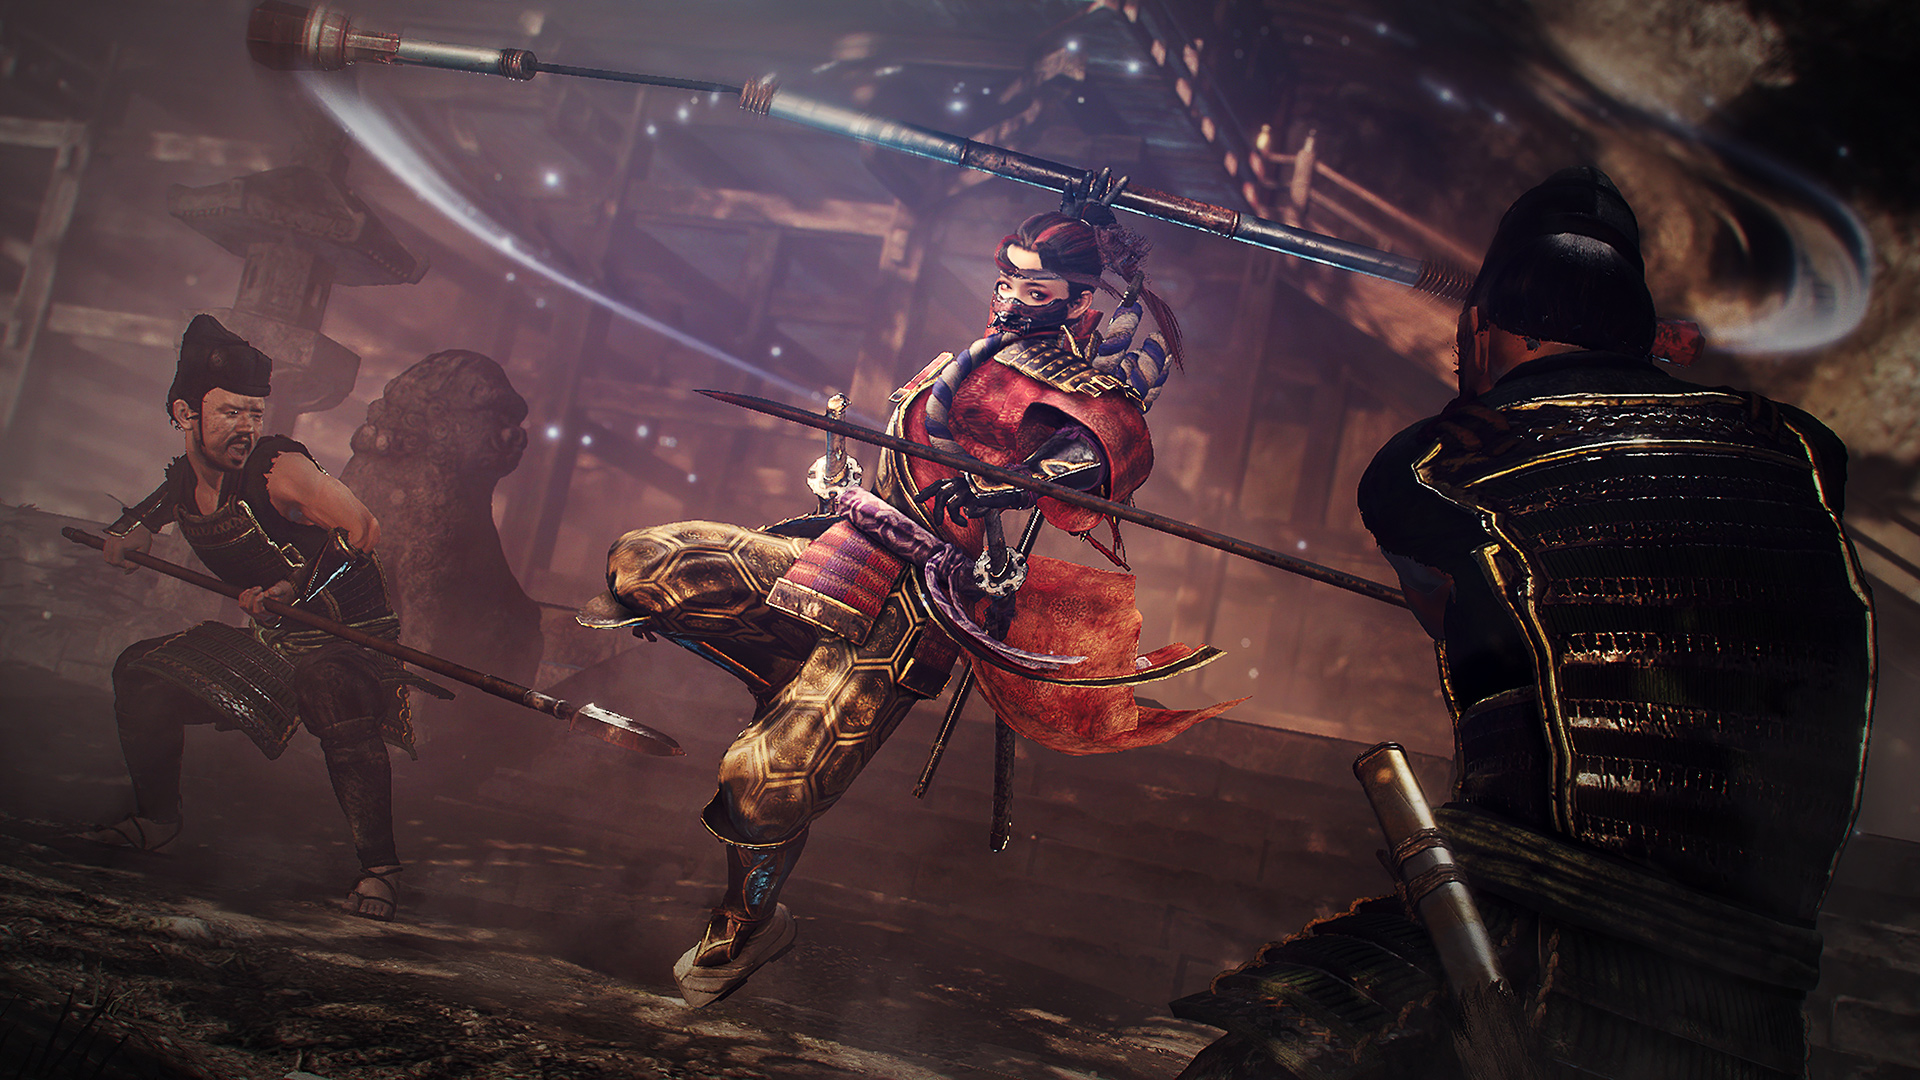 Nioh 2: The Tengu's Disciple is out today along with a free update screenshot